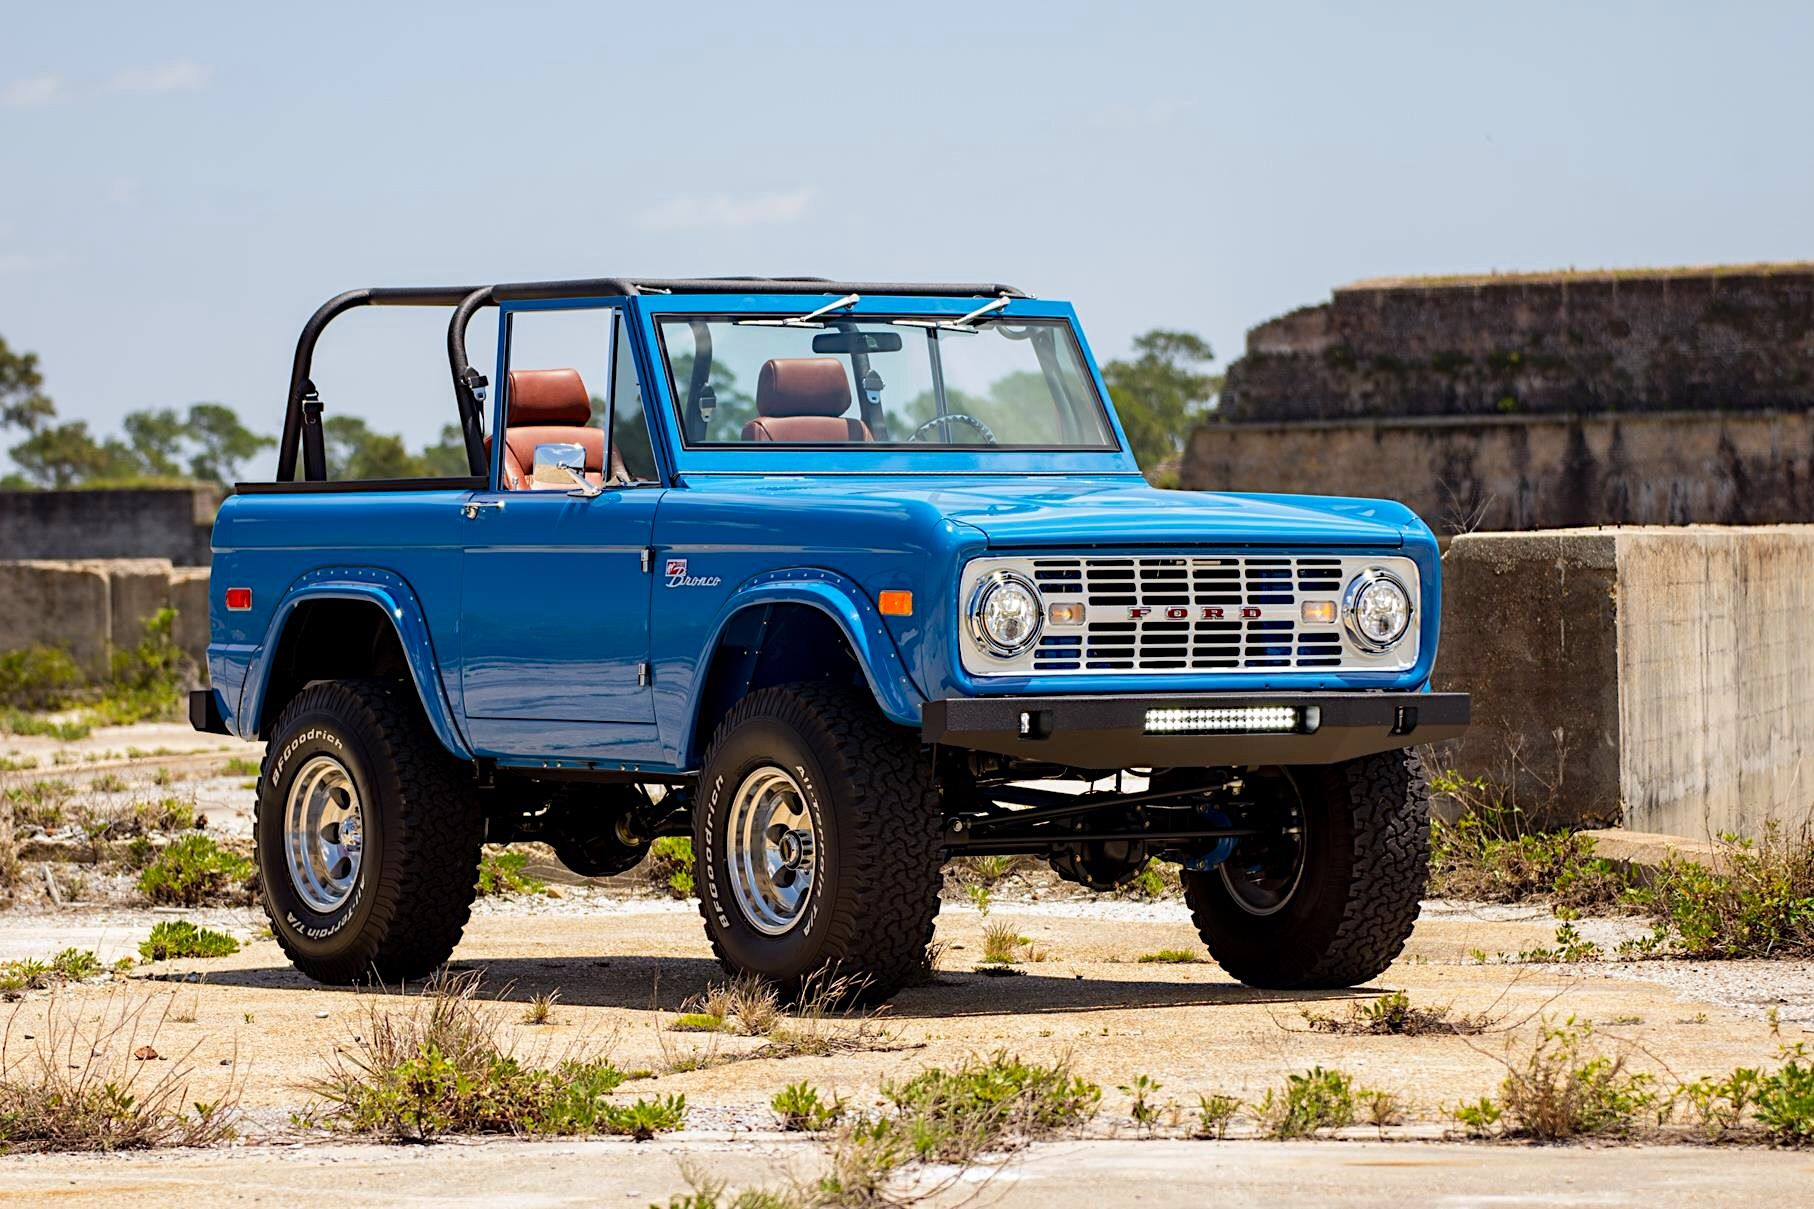 Fully Restored Bright Blue 76 Ford Bronco Ford Bronco Classic